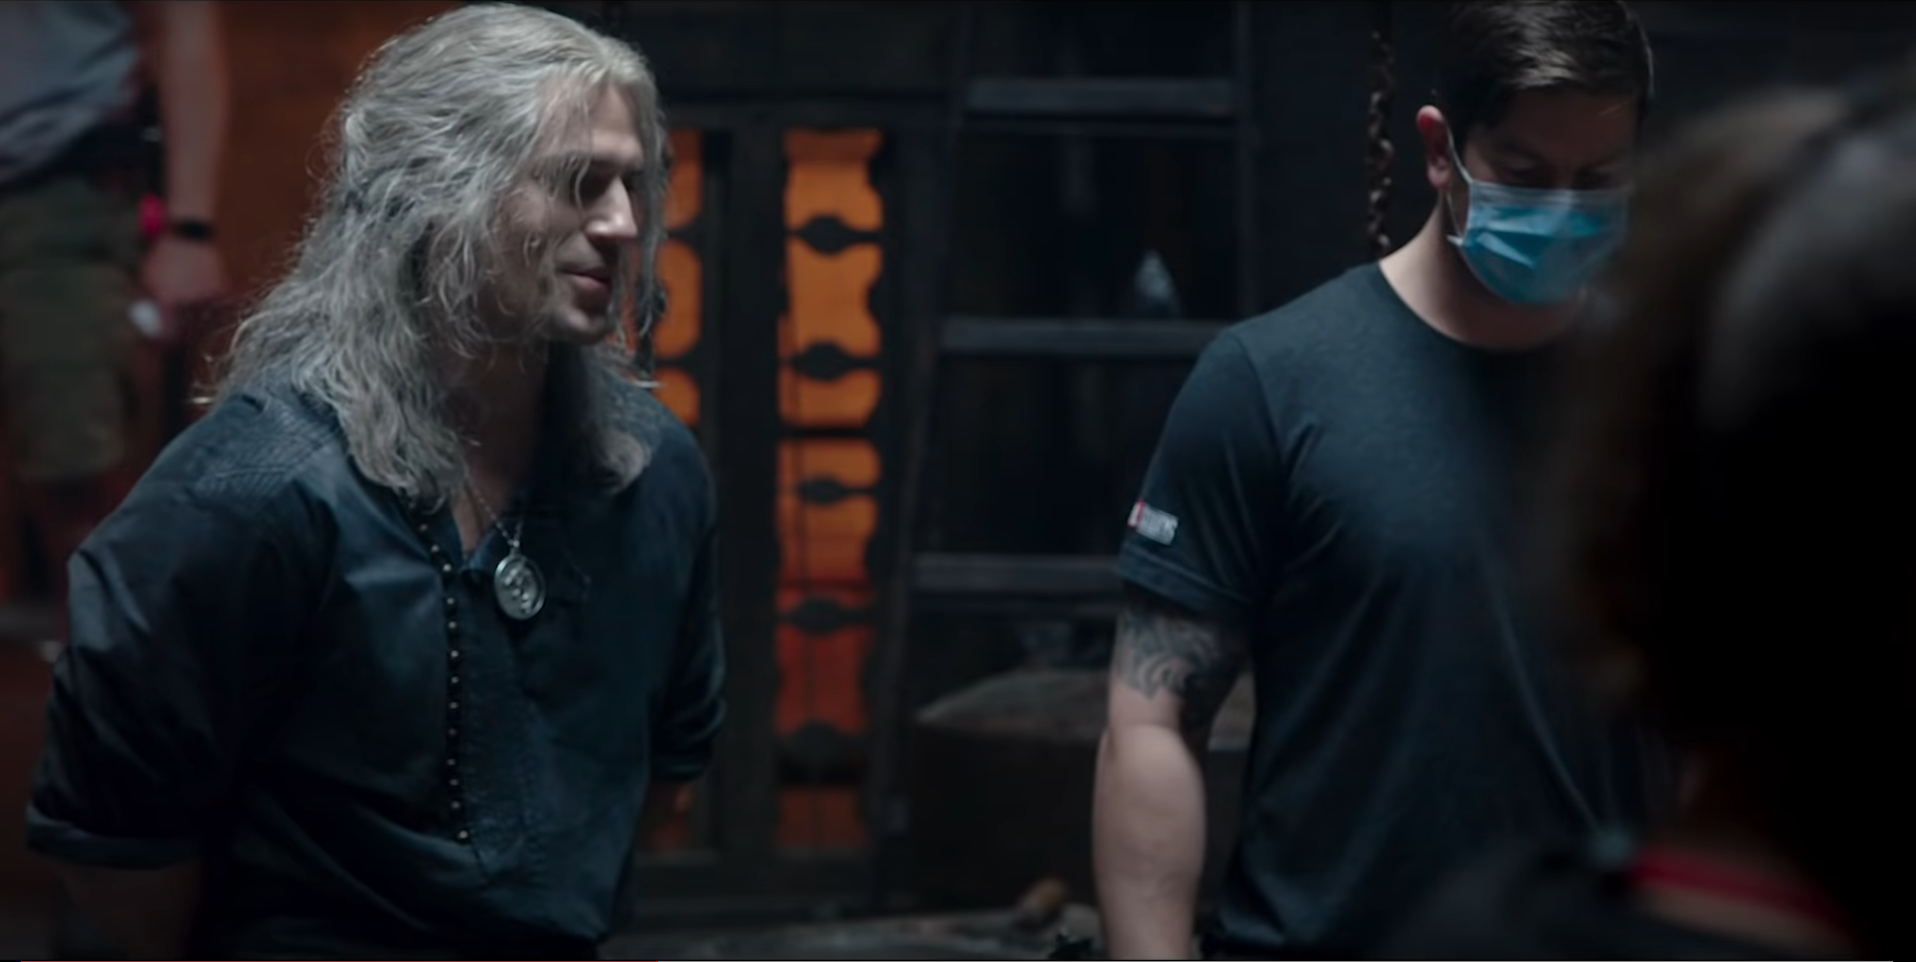 Henry Cavill as Geralt on the set of Netflix's The Witcher season 2